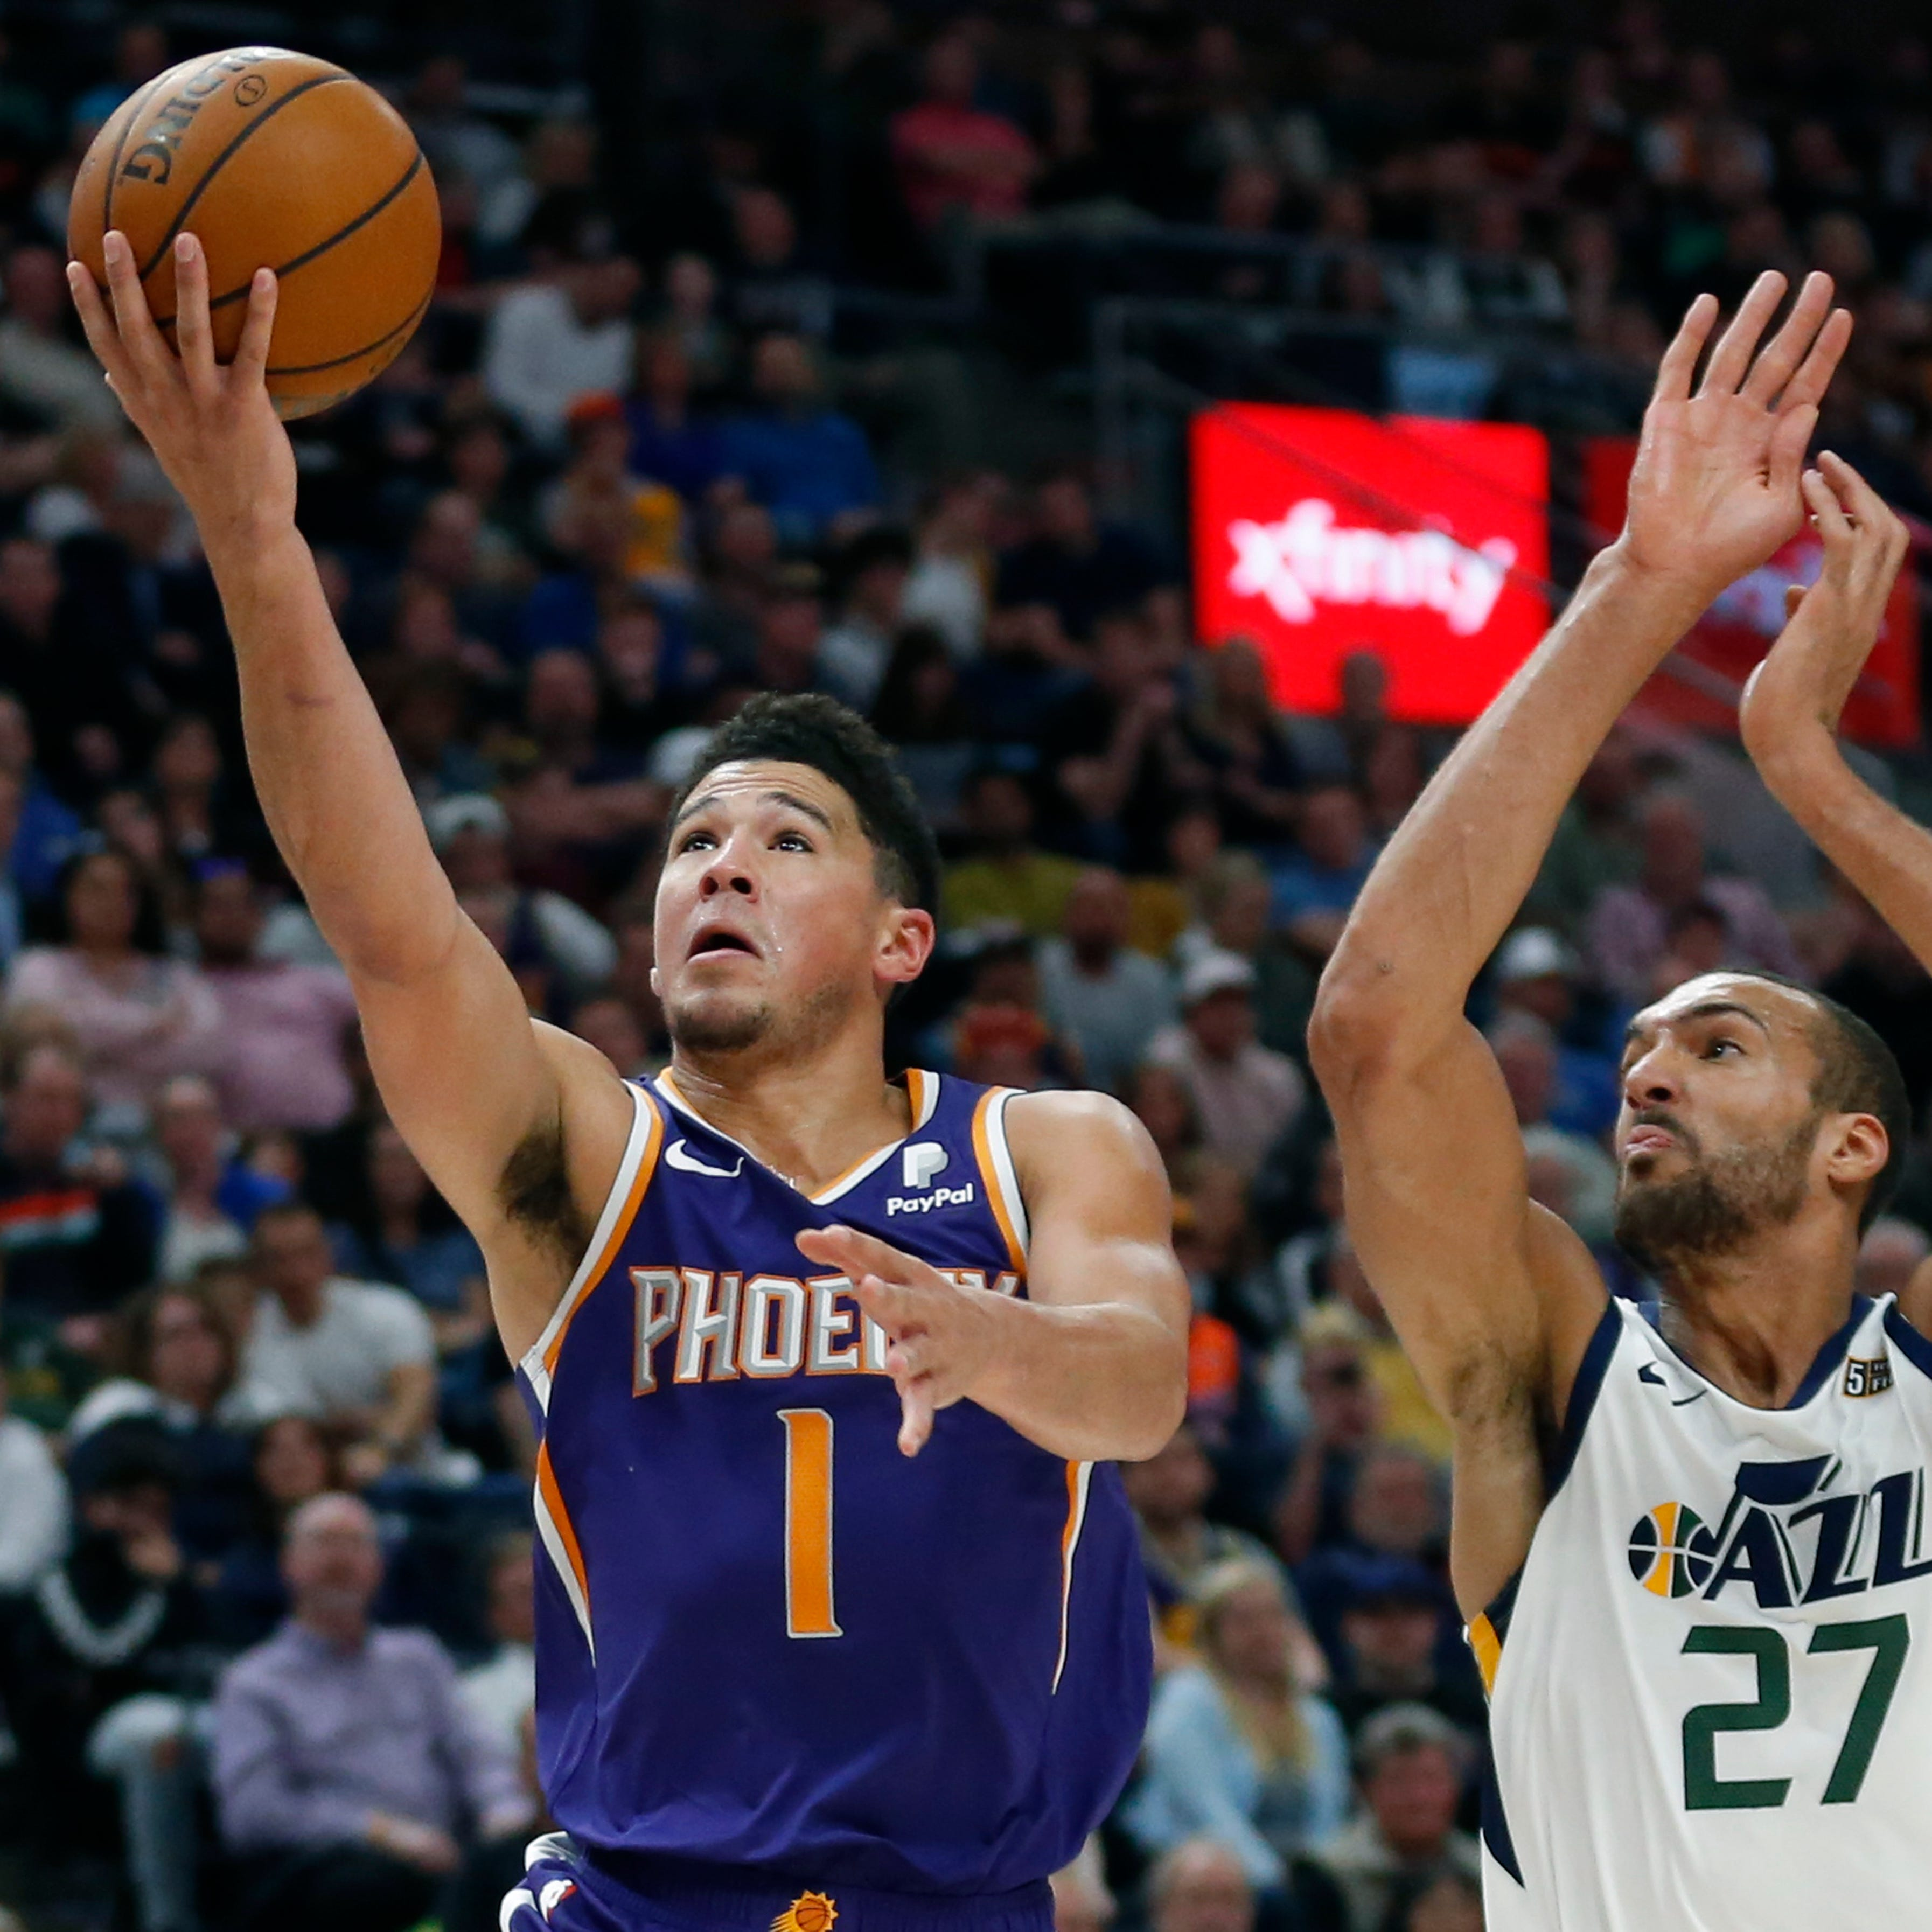 Devin Booker erupts for 59 points as Jazz foul to prevent more in Suns' blowout loss